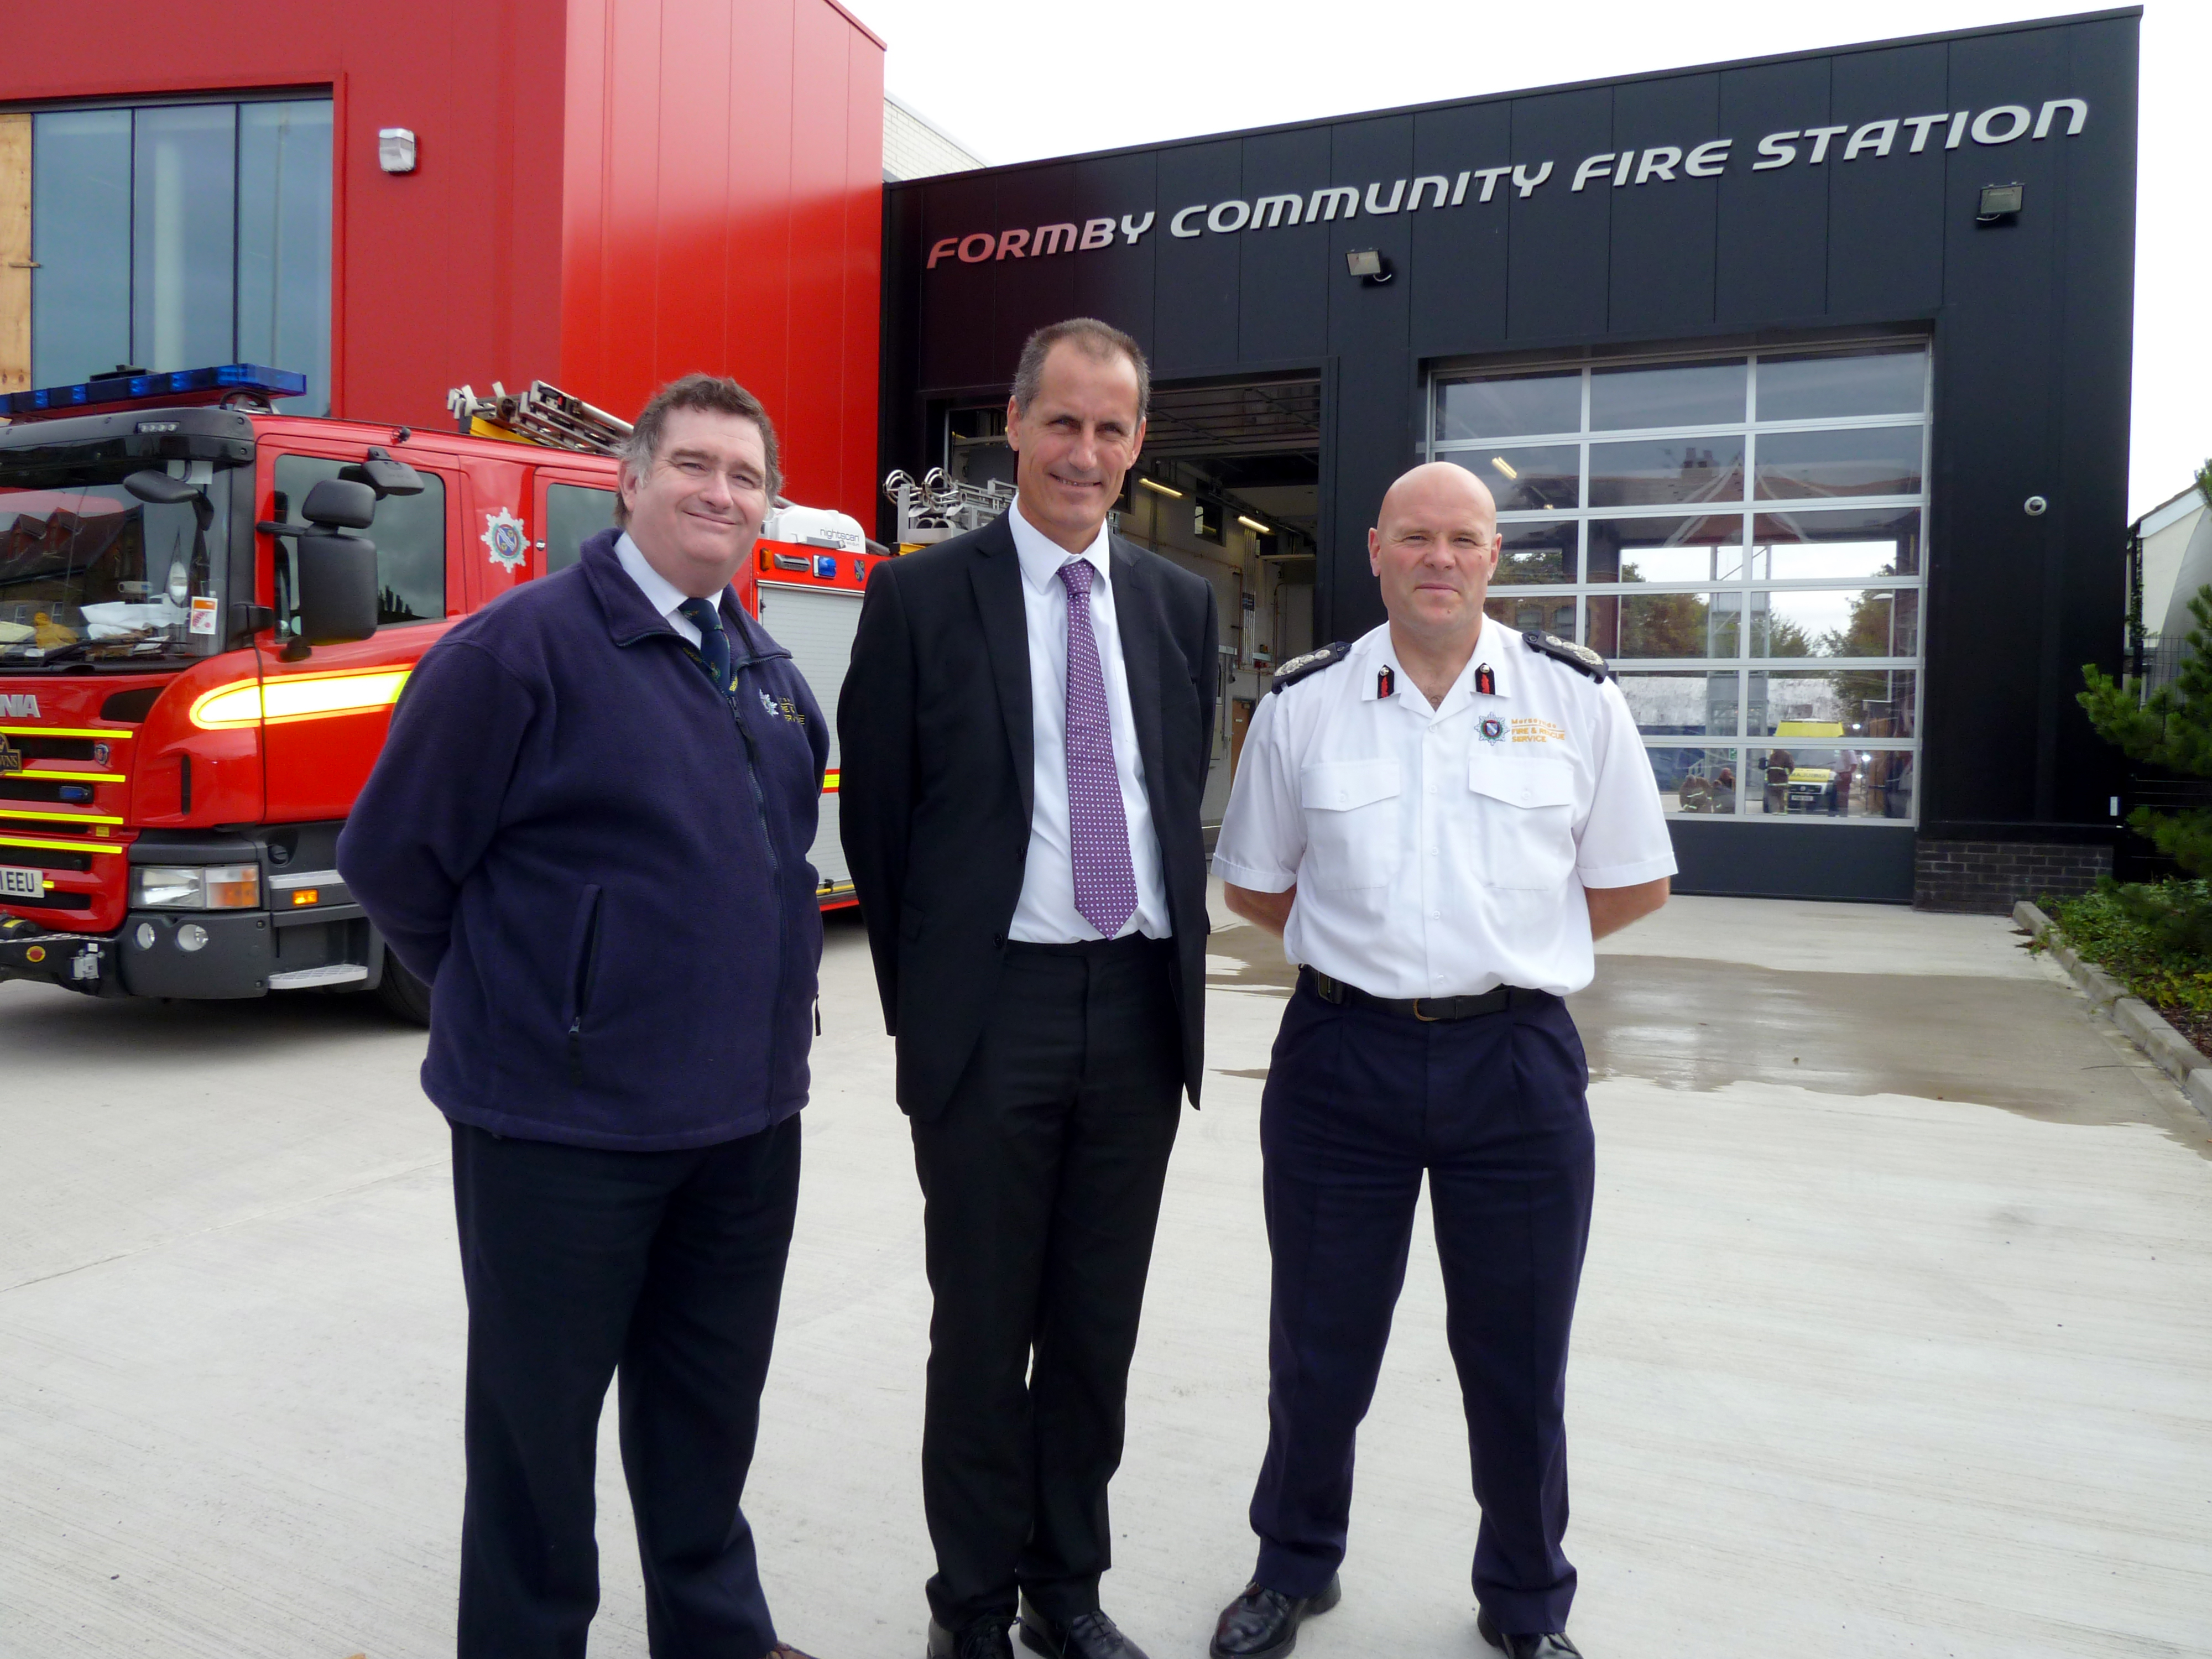 Sefton Central Labour MP Bill Esterson with Merseyside Fire Authority Vice Chairman Les Byrom and Chief Fire Officer Dan Stephenson.